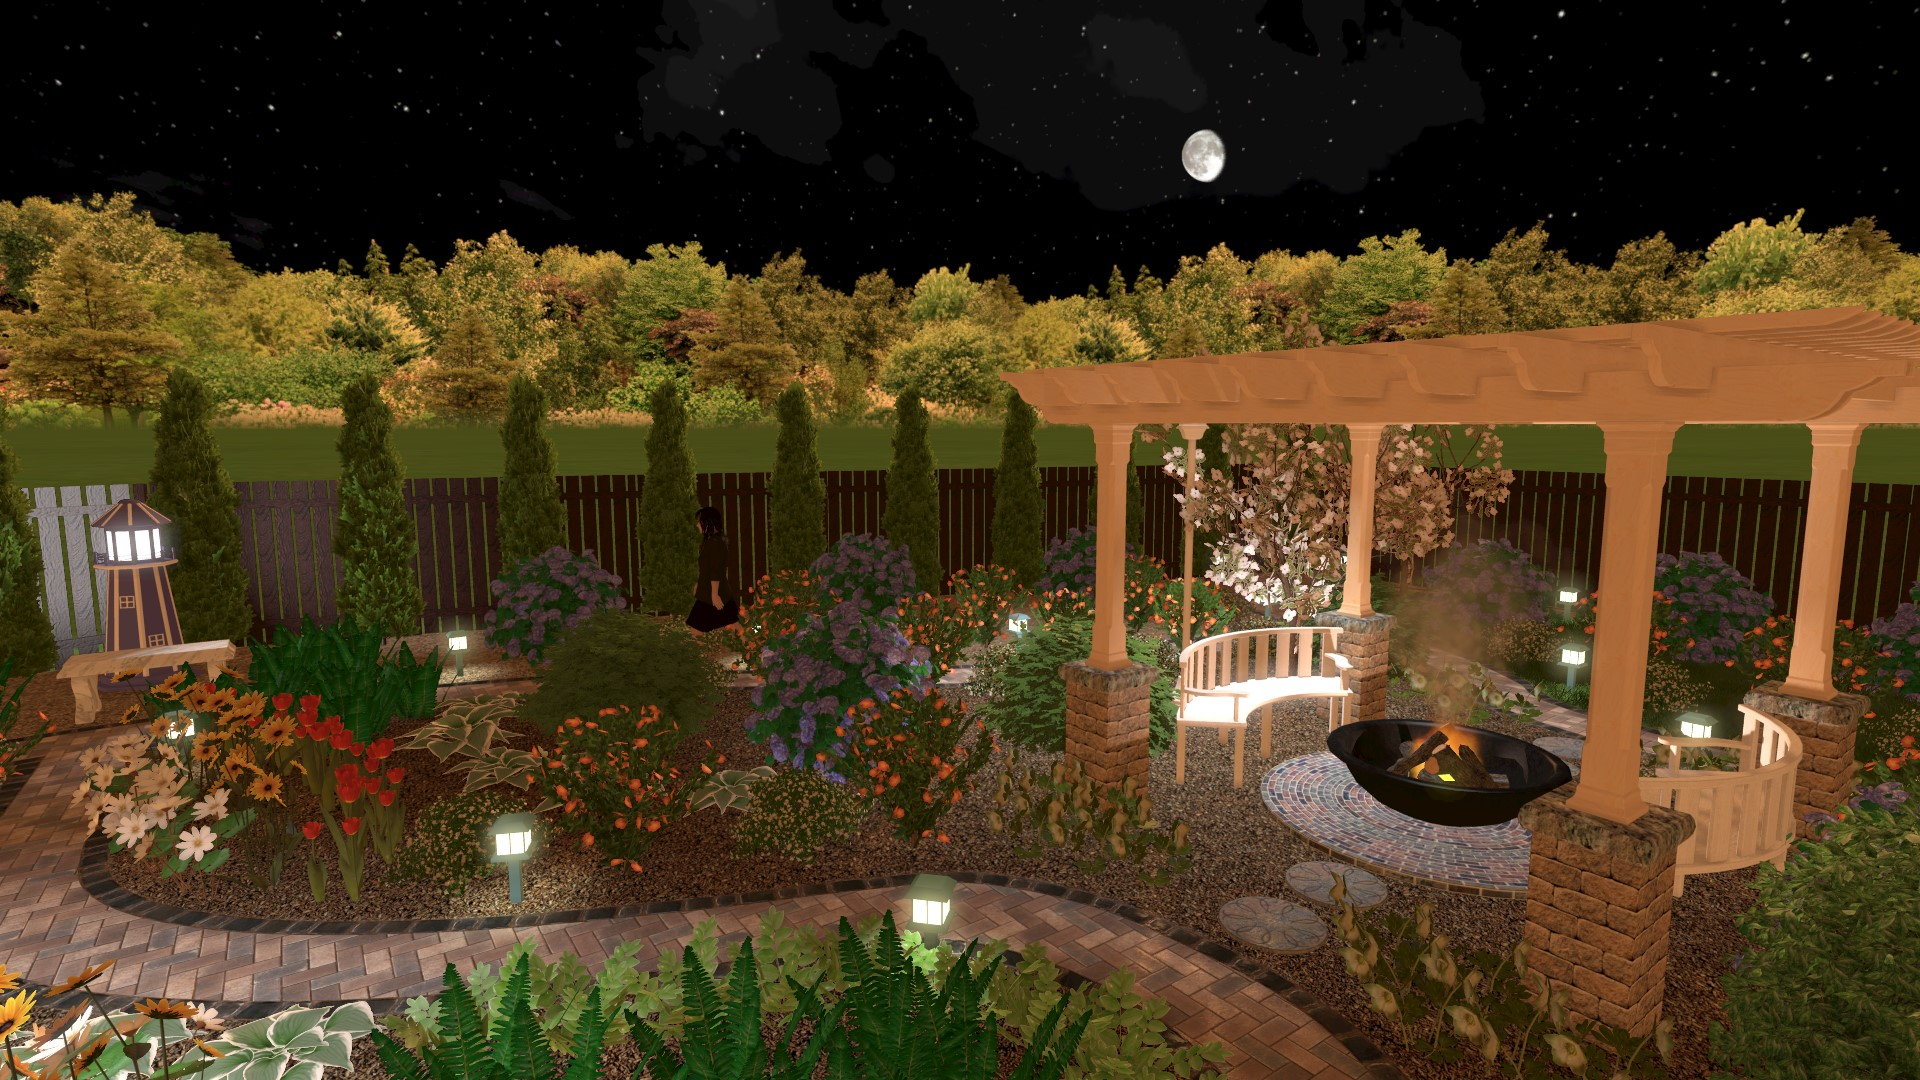 Evening 3D Design With Garden And Fireplace